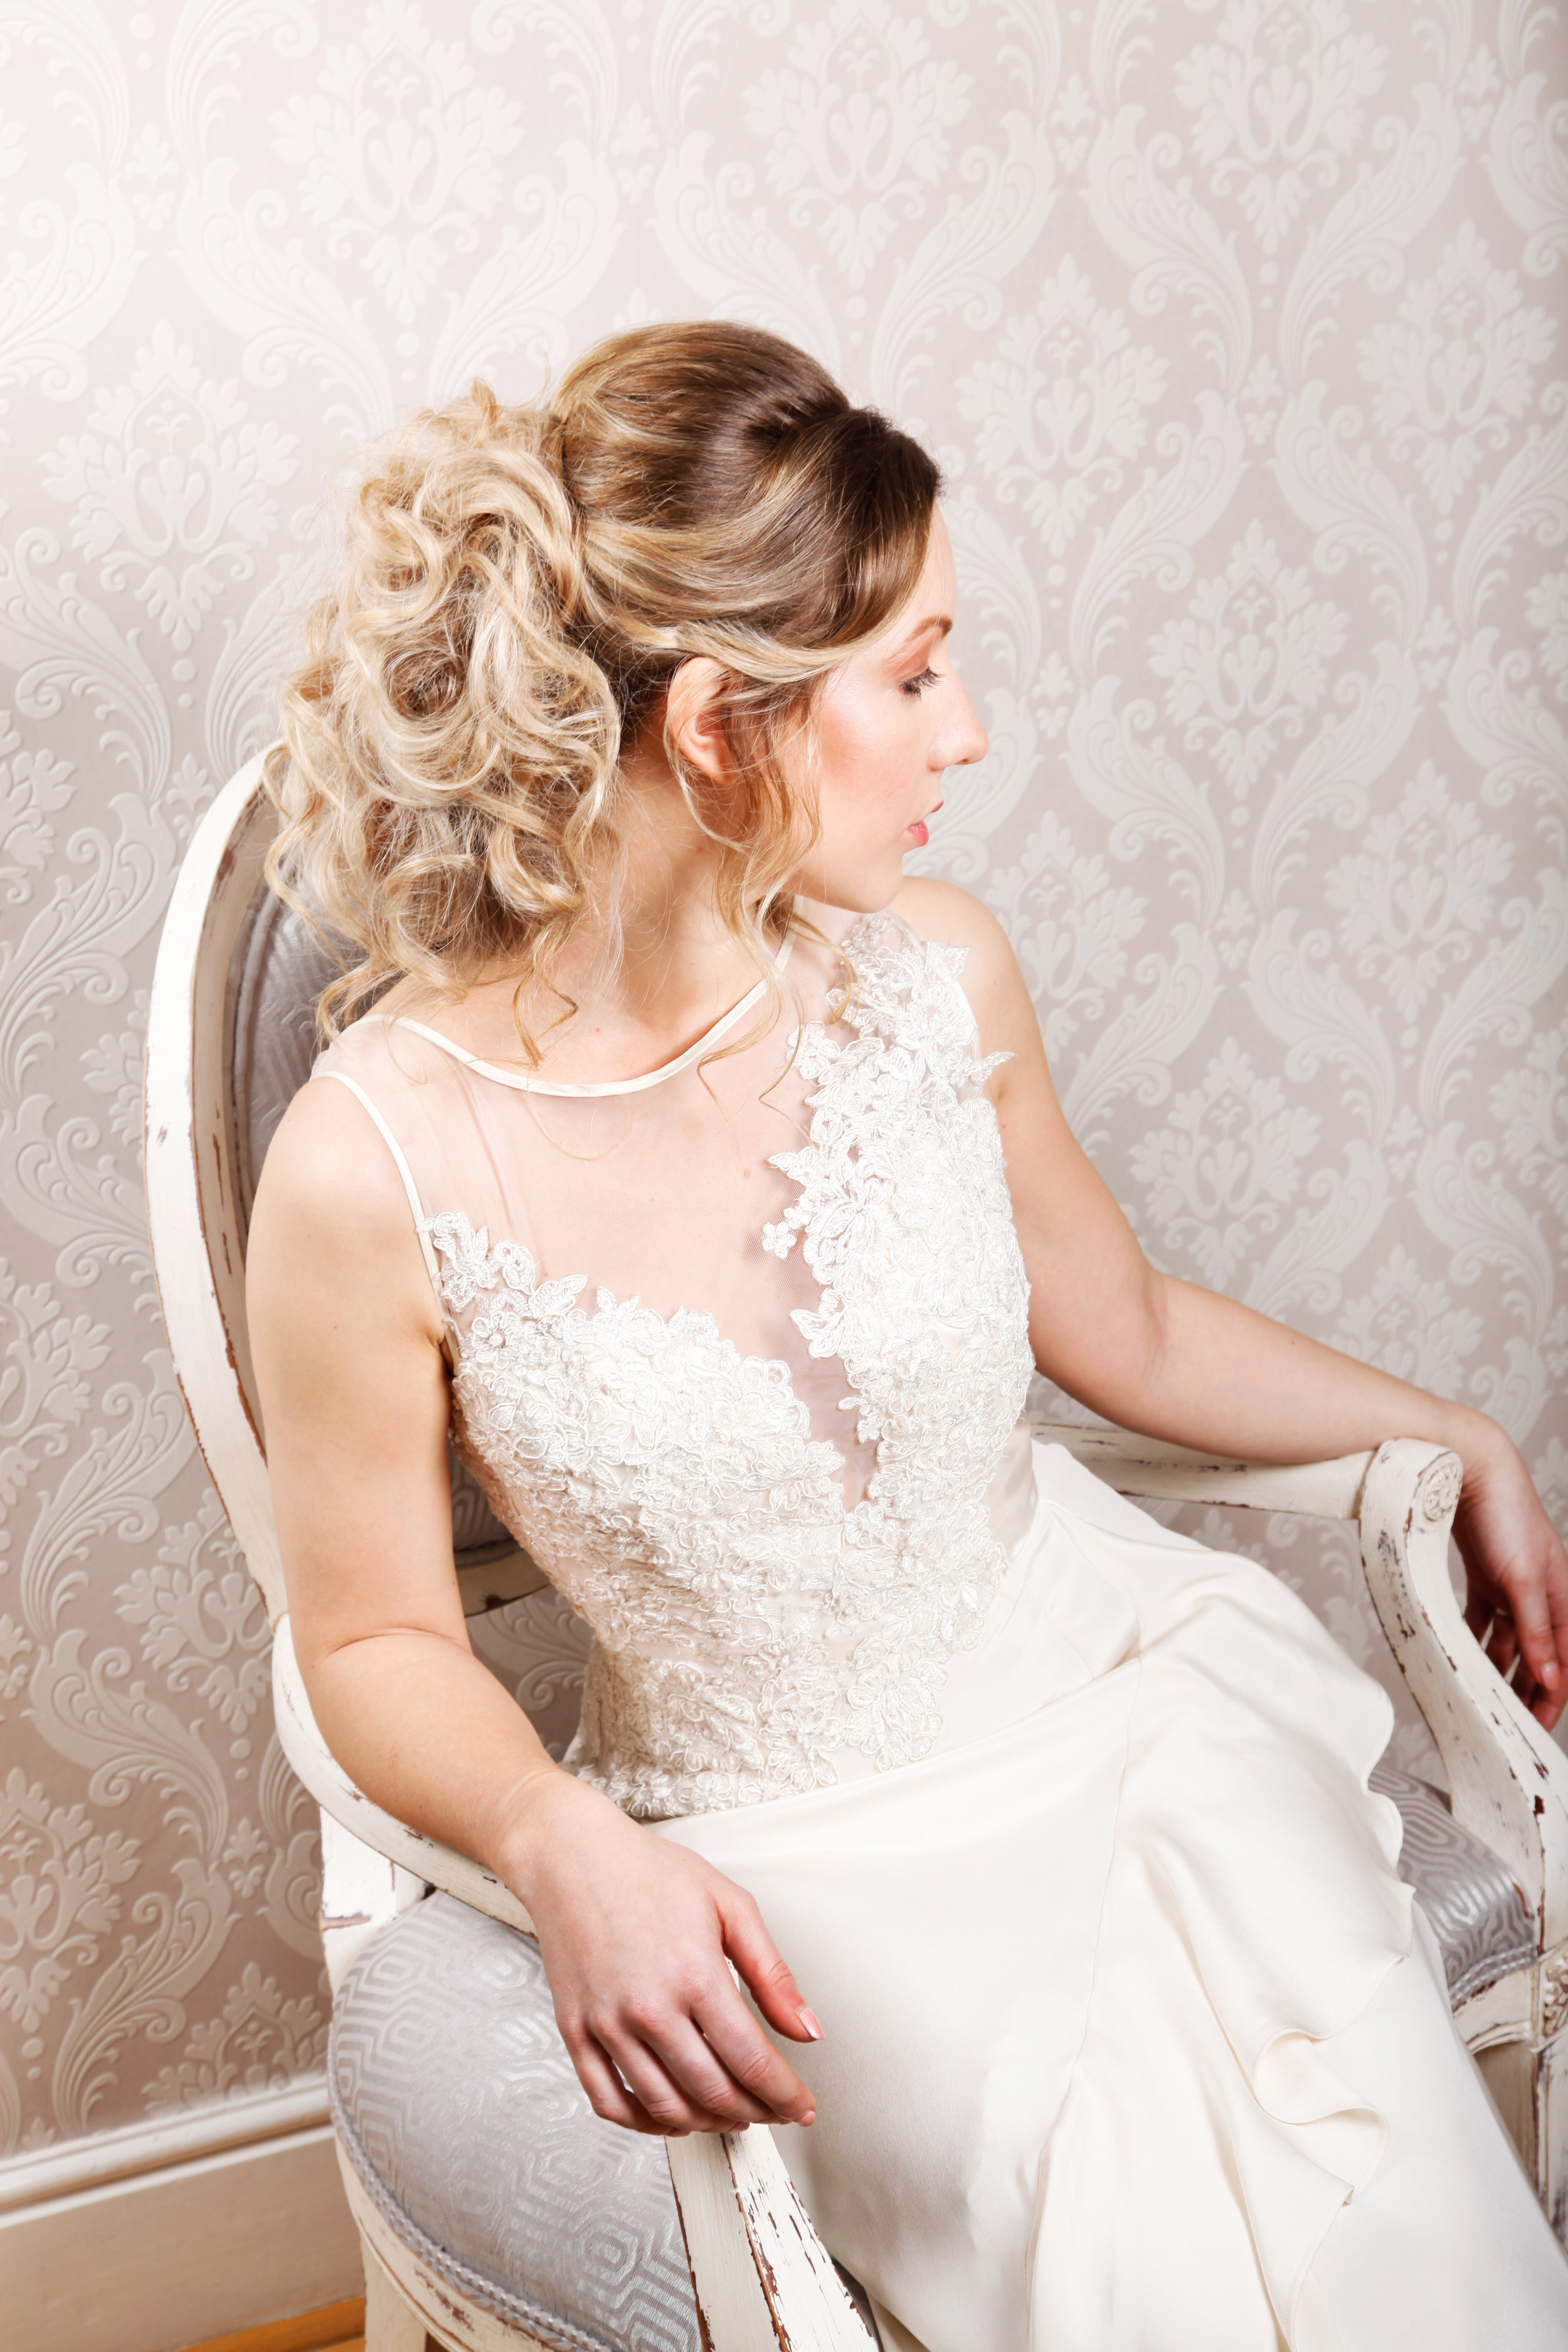 Bridal shoot hair detail